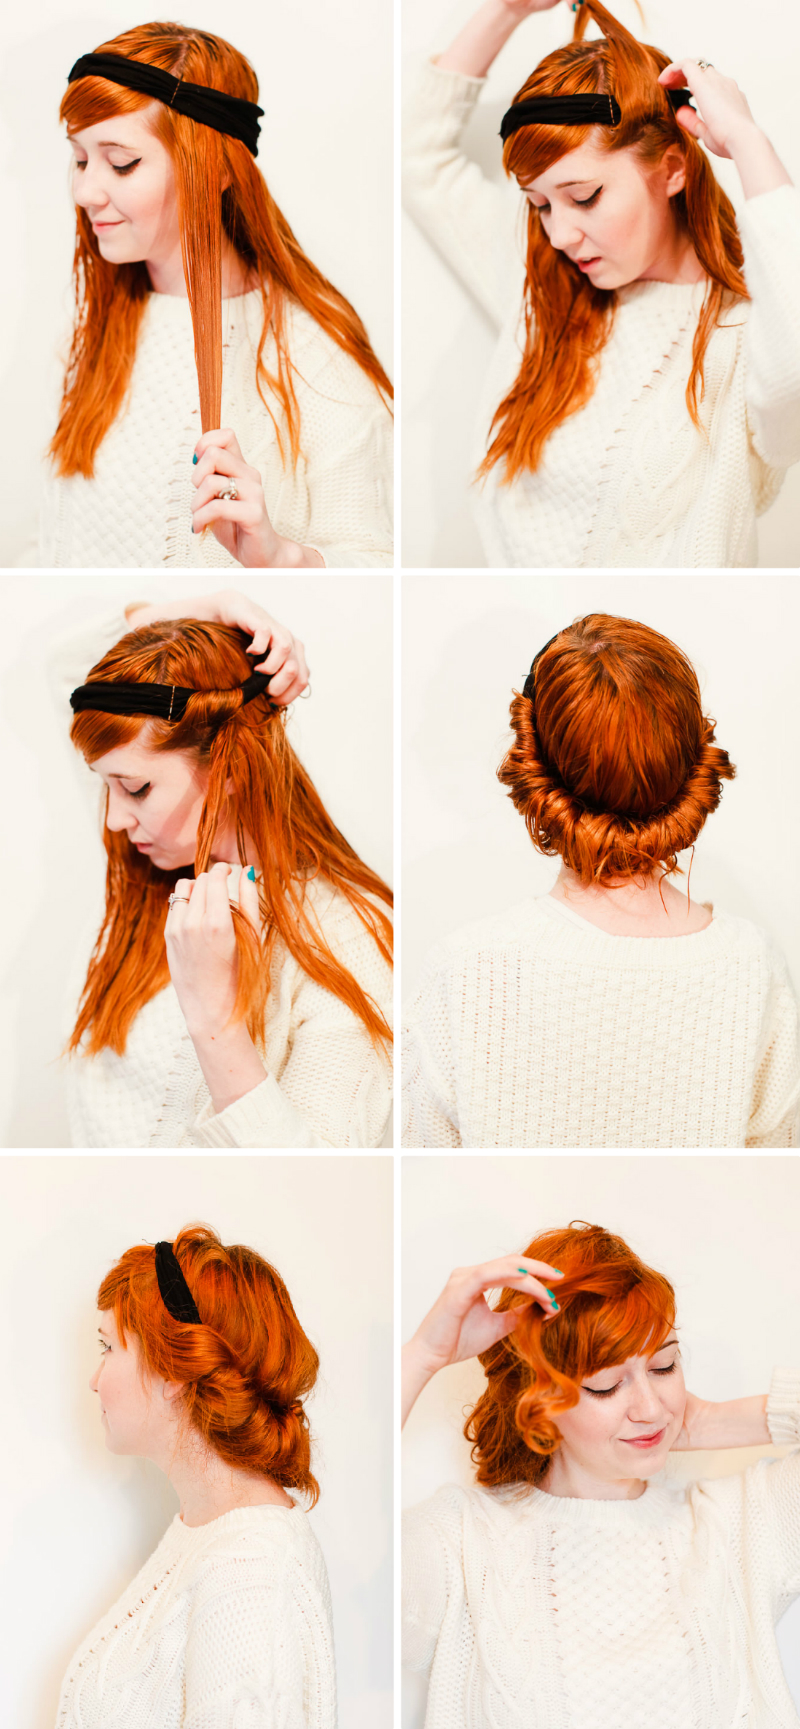 6a00d8358081ff69e201b7c809efbc970b 800wi - Easy yet Trendy hairstyles for Girls 2018